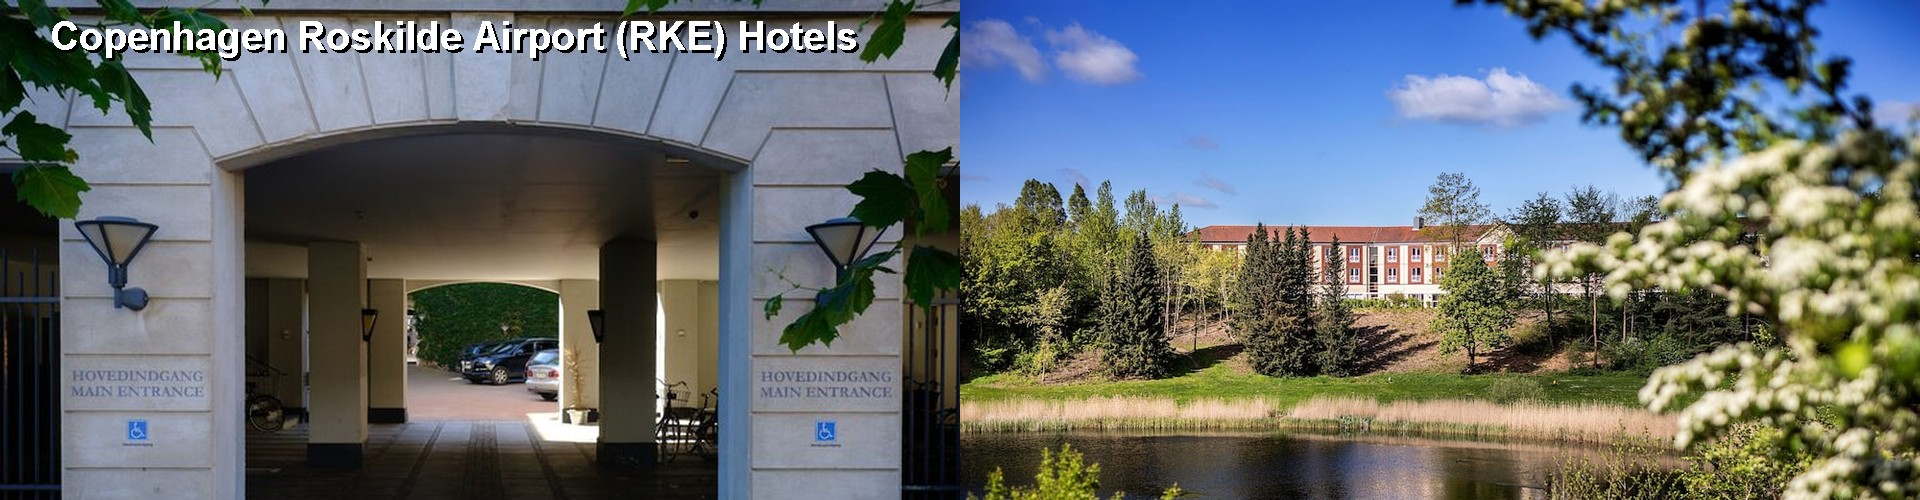 5 Best Hotels Near Copenhagen Roskilde Airport Rke